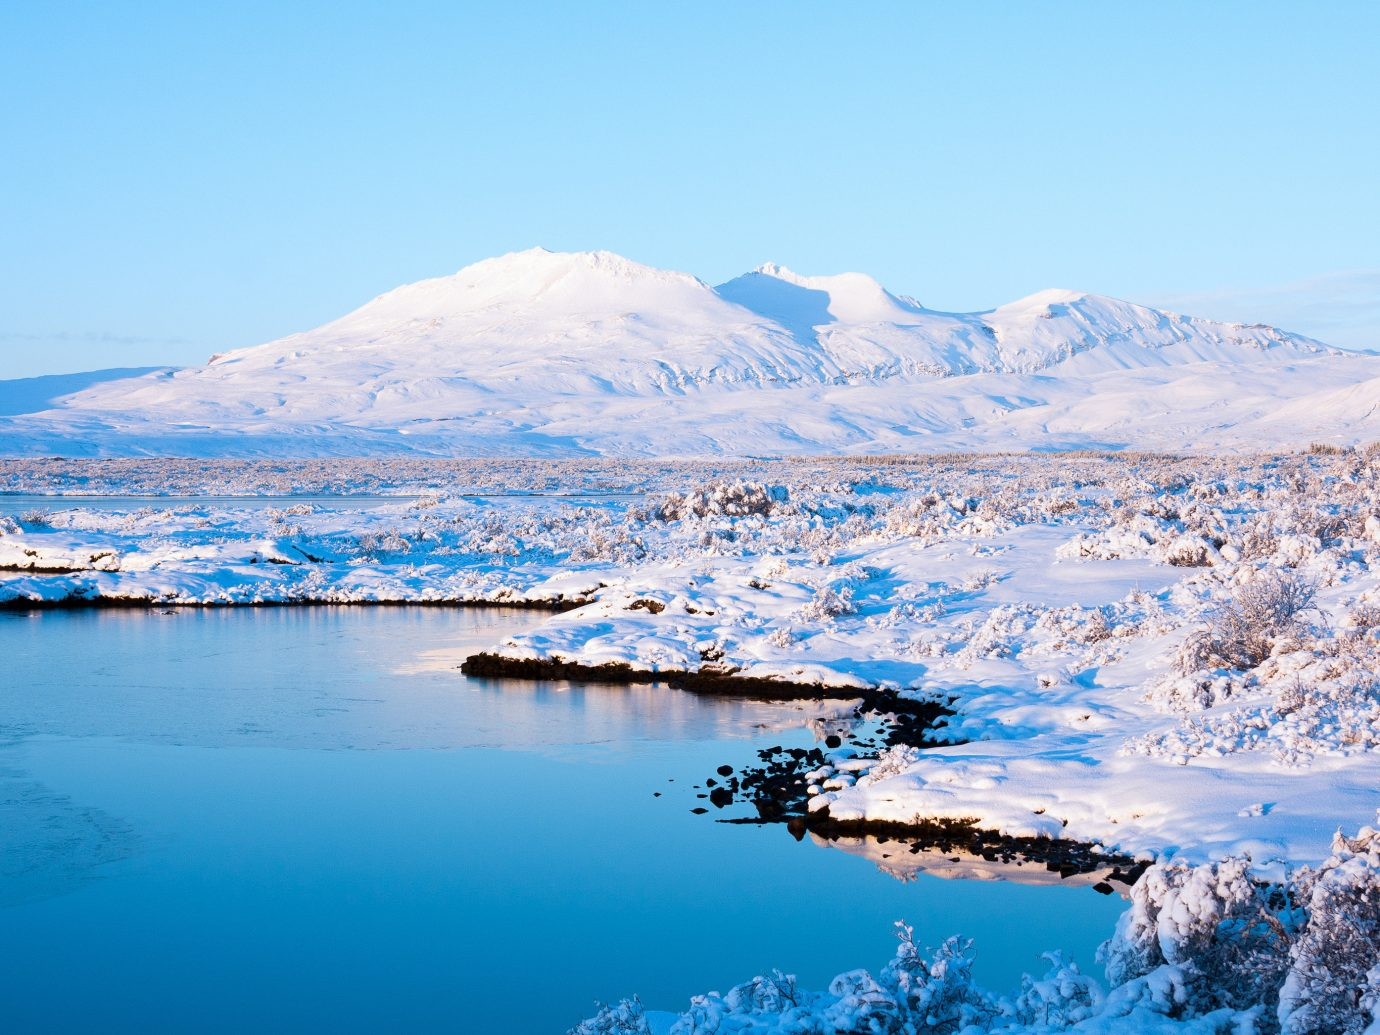 Iceland Trip Ideas water sky outdoor mountain mountainous landforms snow Nature Lake landform Boat geographical feature Winter weather mountain range season loch reflection arctic ice landscape arctic ocean Sea crater lake alps glacial landform surrounded shore